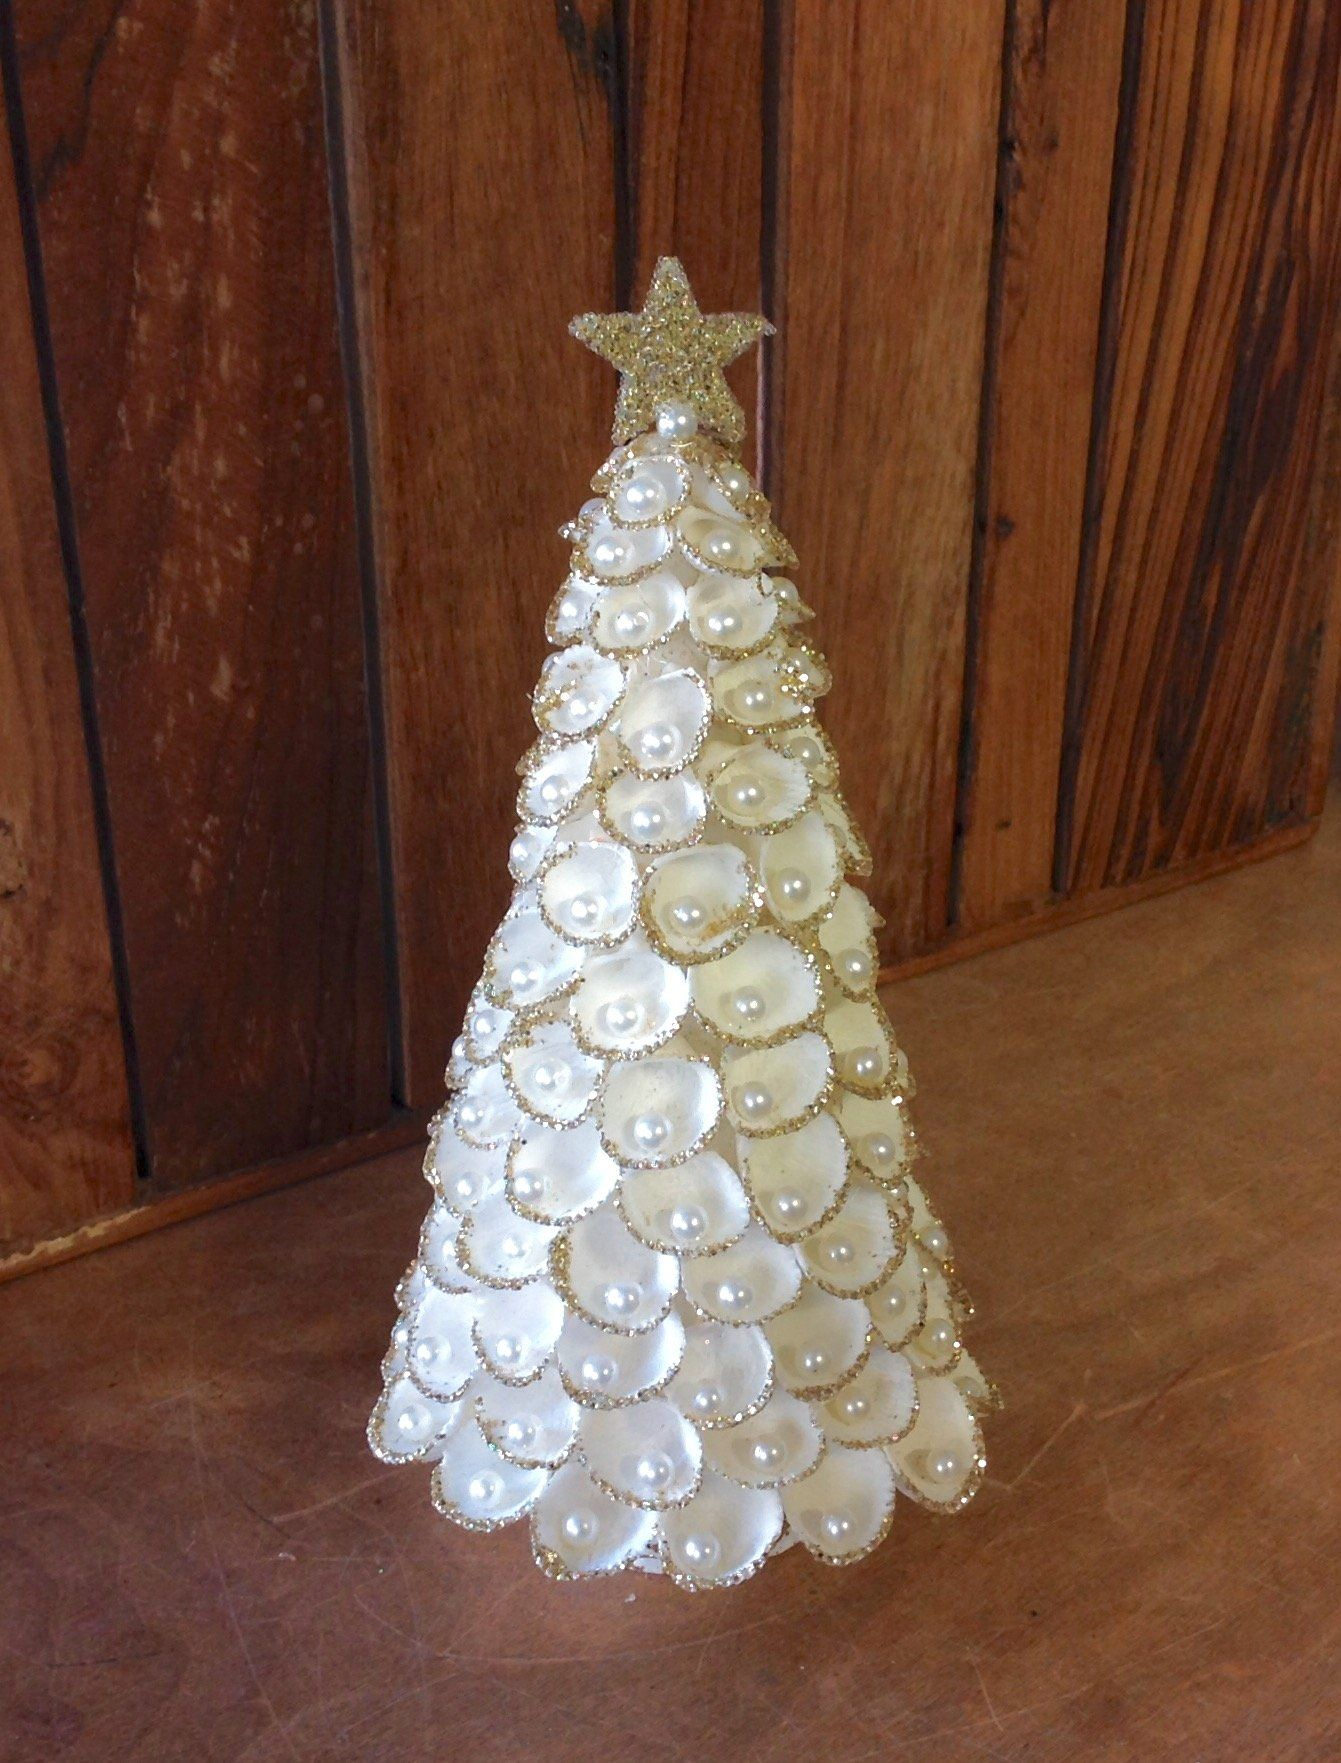 Clam Shell Tree Decor Christmas Tree Crafts Jeweled Christmas Trees Christmas Diy